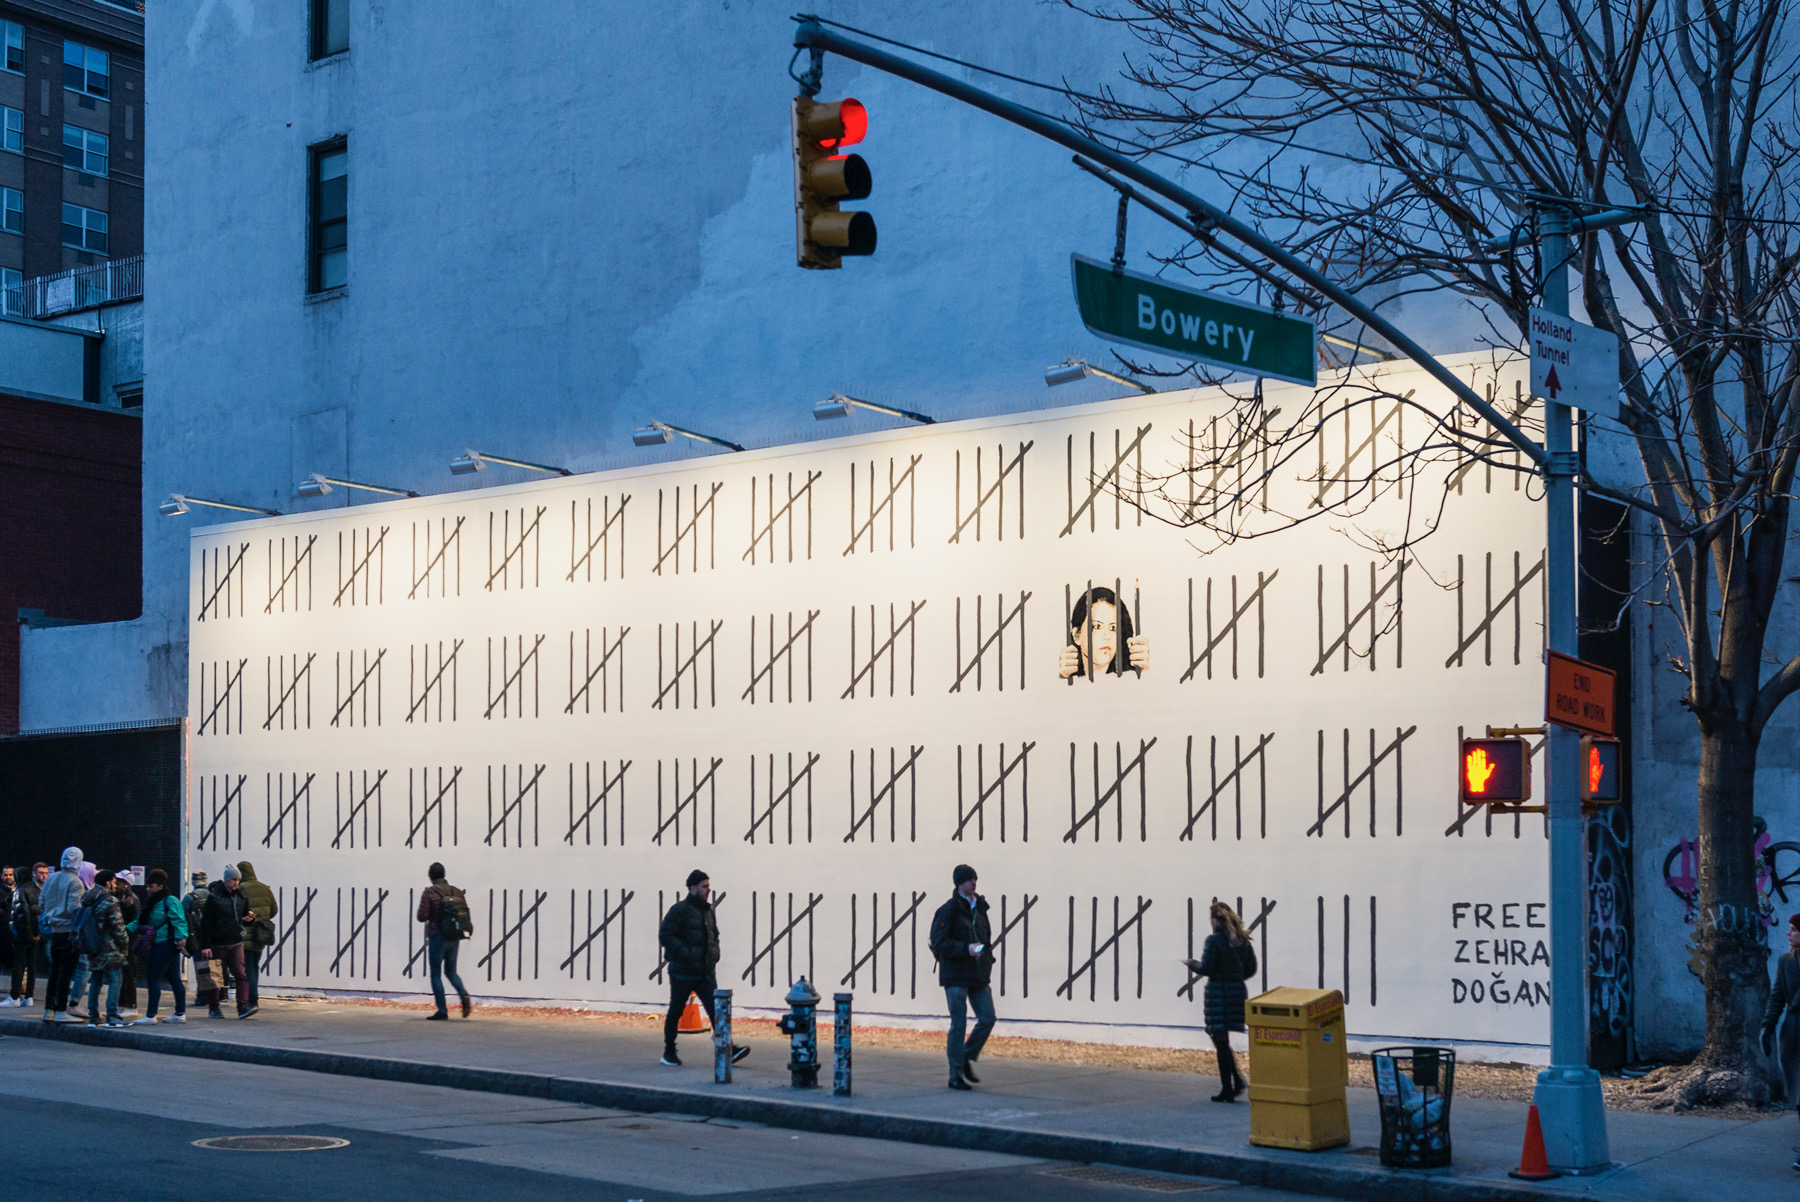 Banksy Takes Over Houston Bowery Wall in New York City Artes & contextos image311